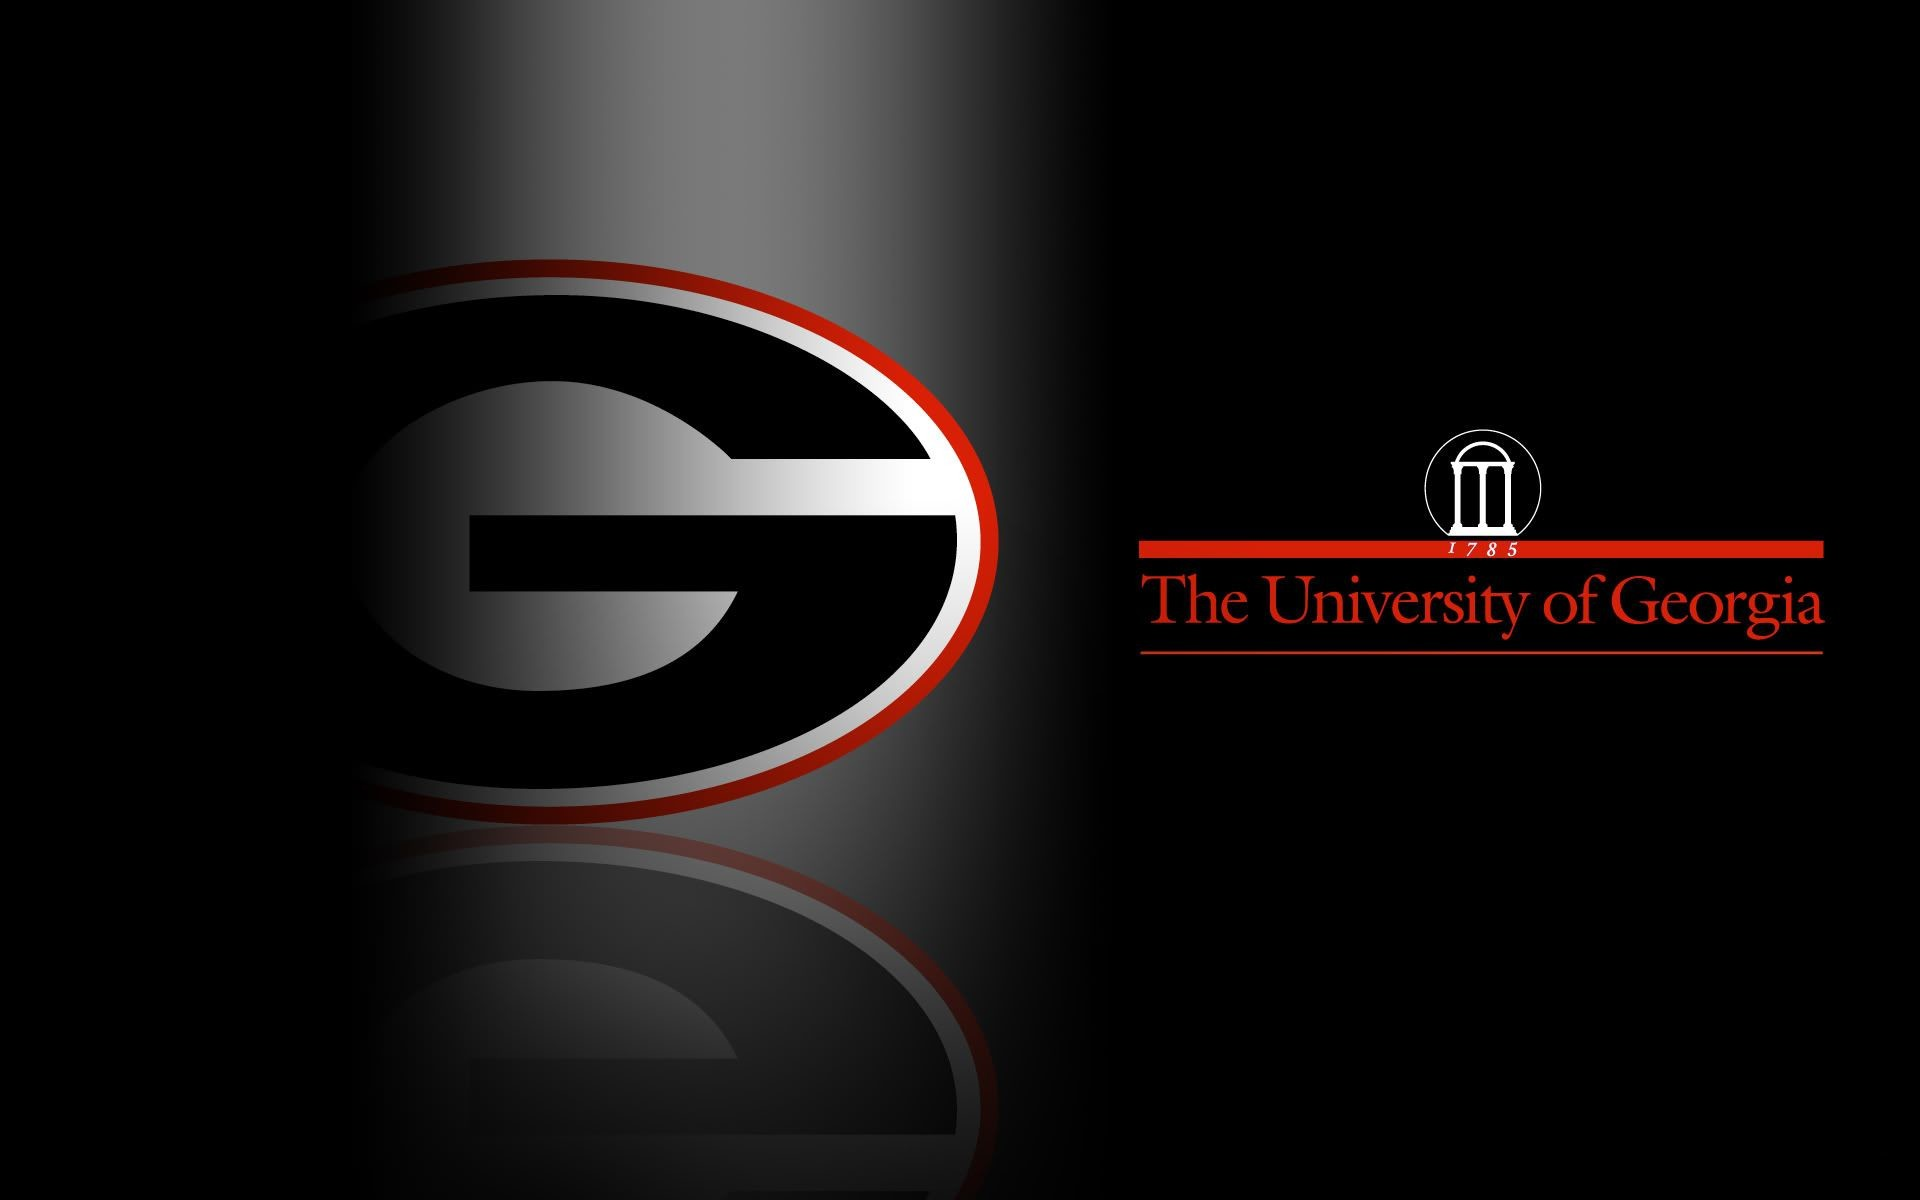 1920x1200 Wallpaper Blink - Georgia Bulldogs Wallpaper HD 1 - 1920 X 1200 for  Android, Windows, Mac and Xbox